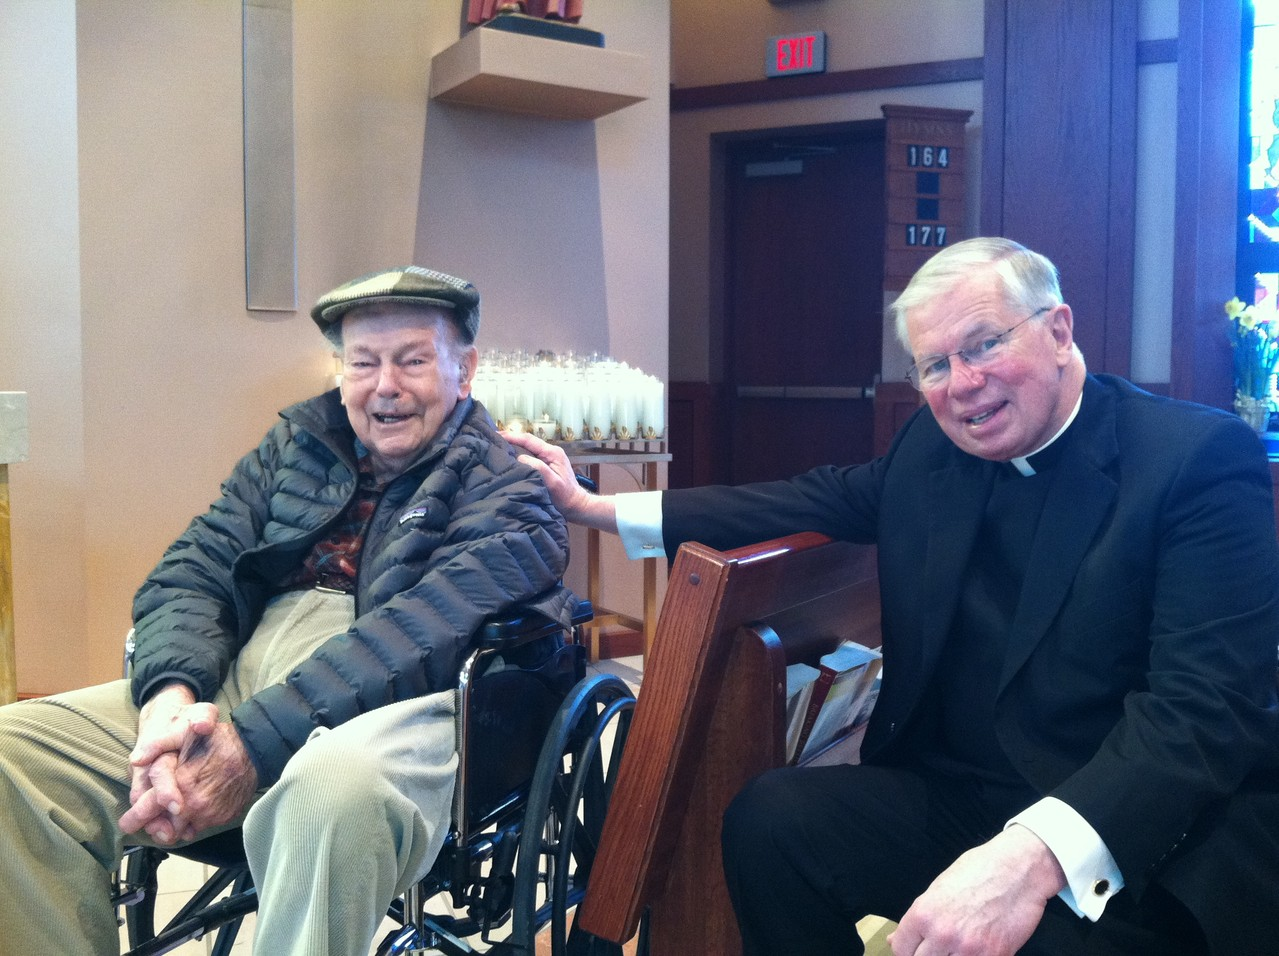 Al Gudas & Msgr. Yeazel, Holy Cross Church 3-31-2013